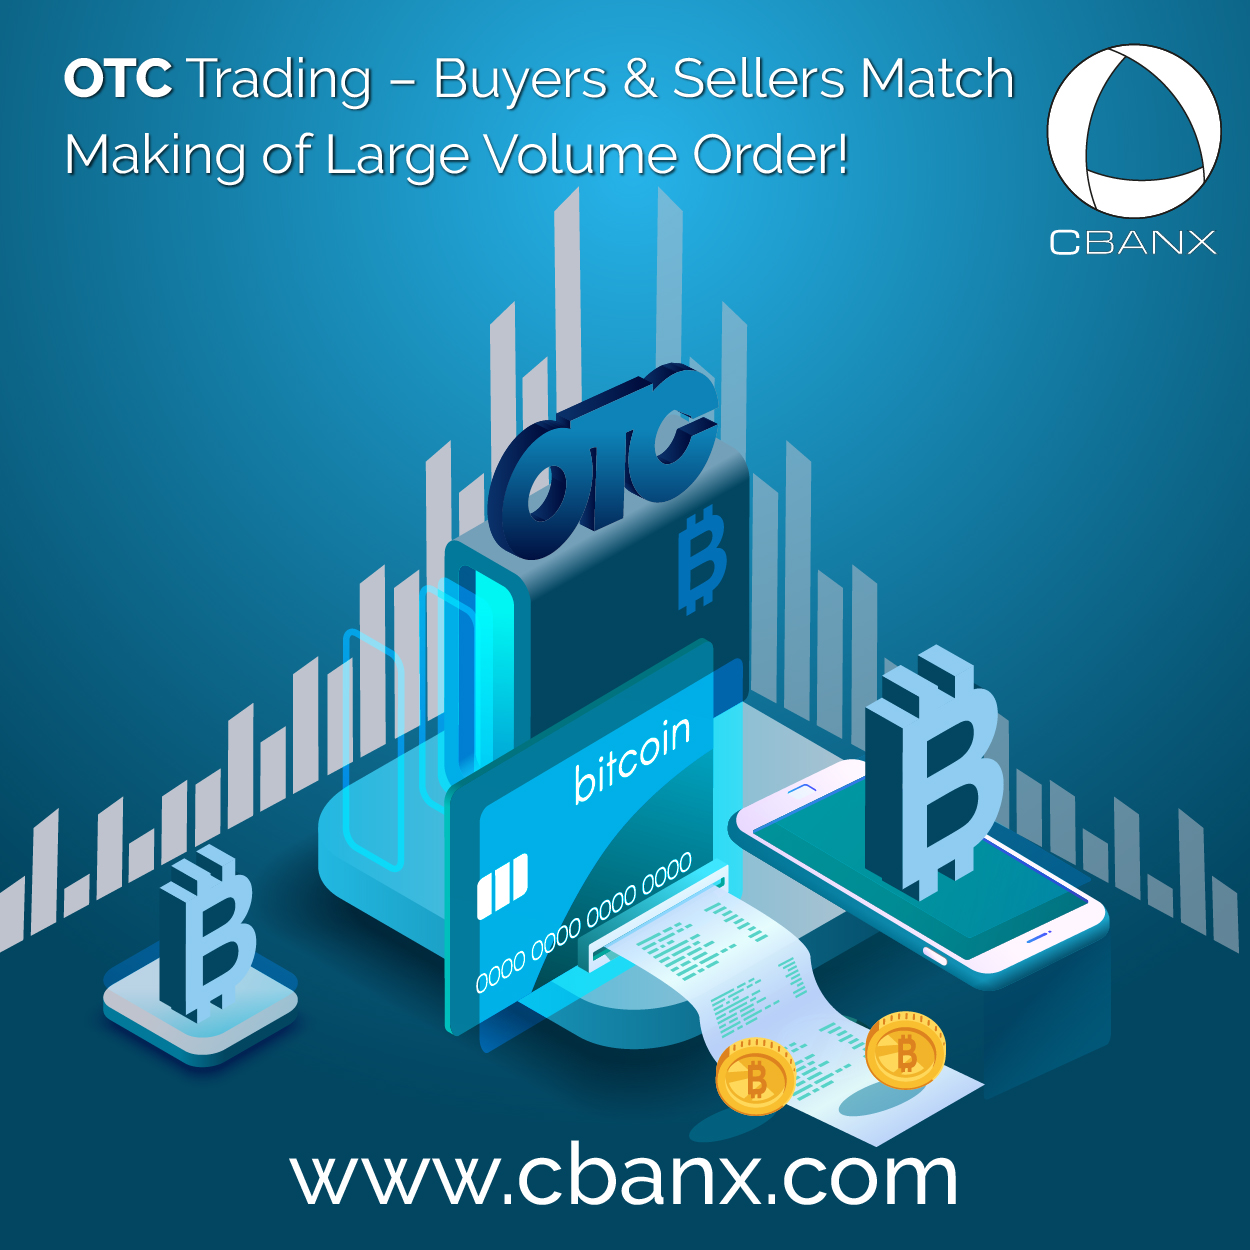 OTC Trading – Buyers & Sellers Match Making of Large Volume Order!